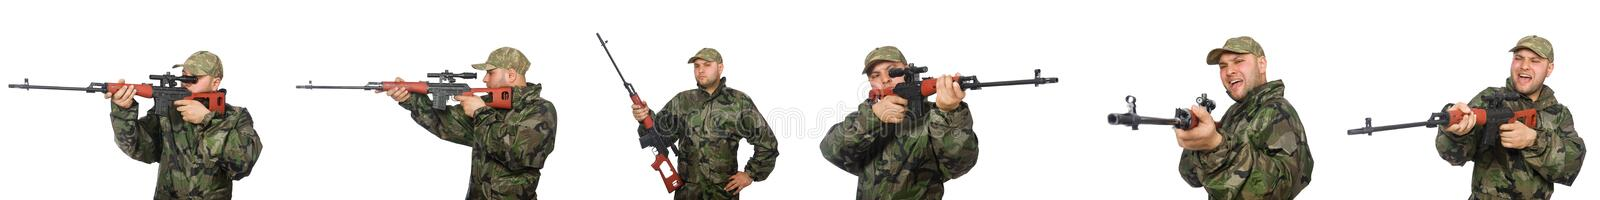 The soldier with sniper rifle isolated on white stock images